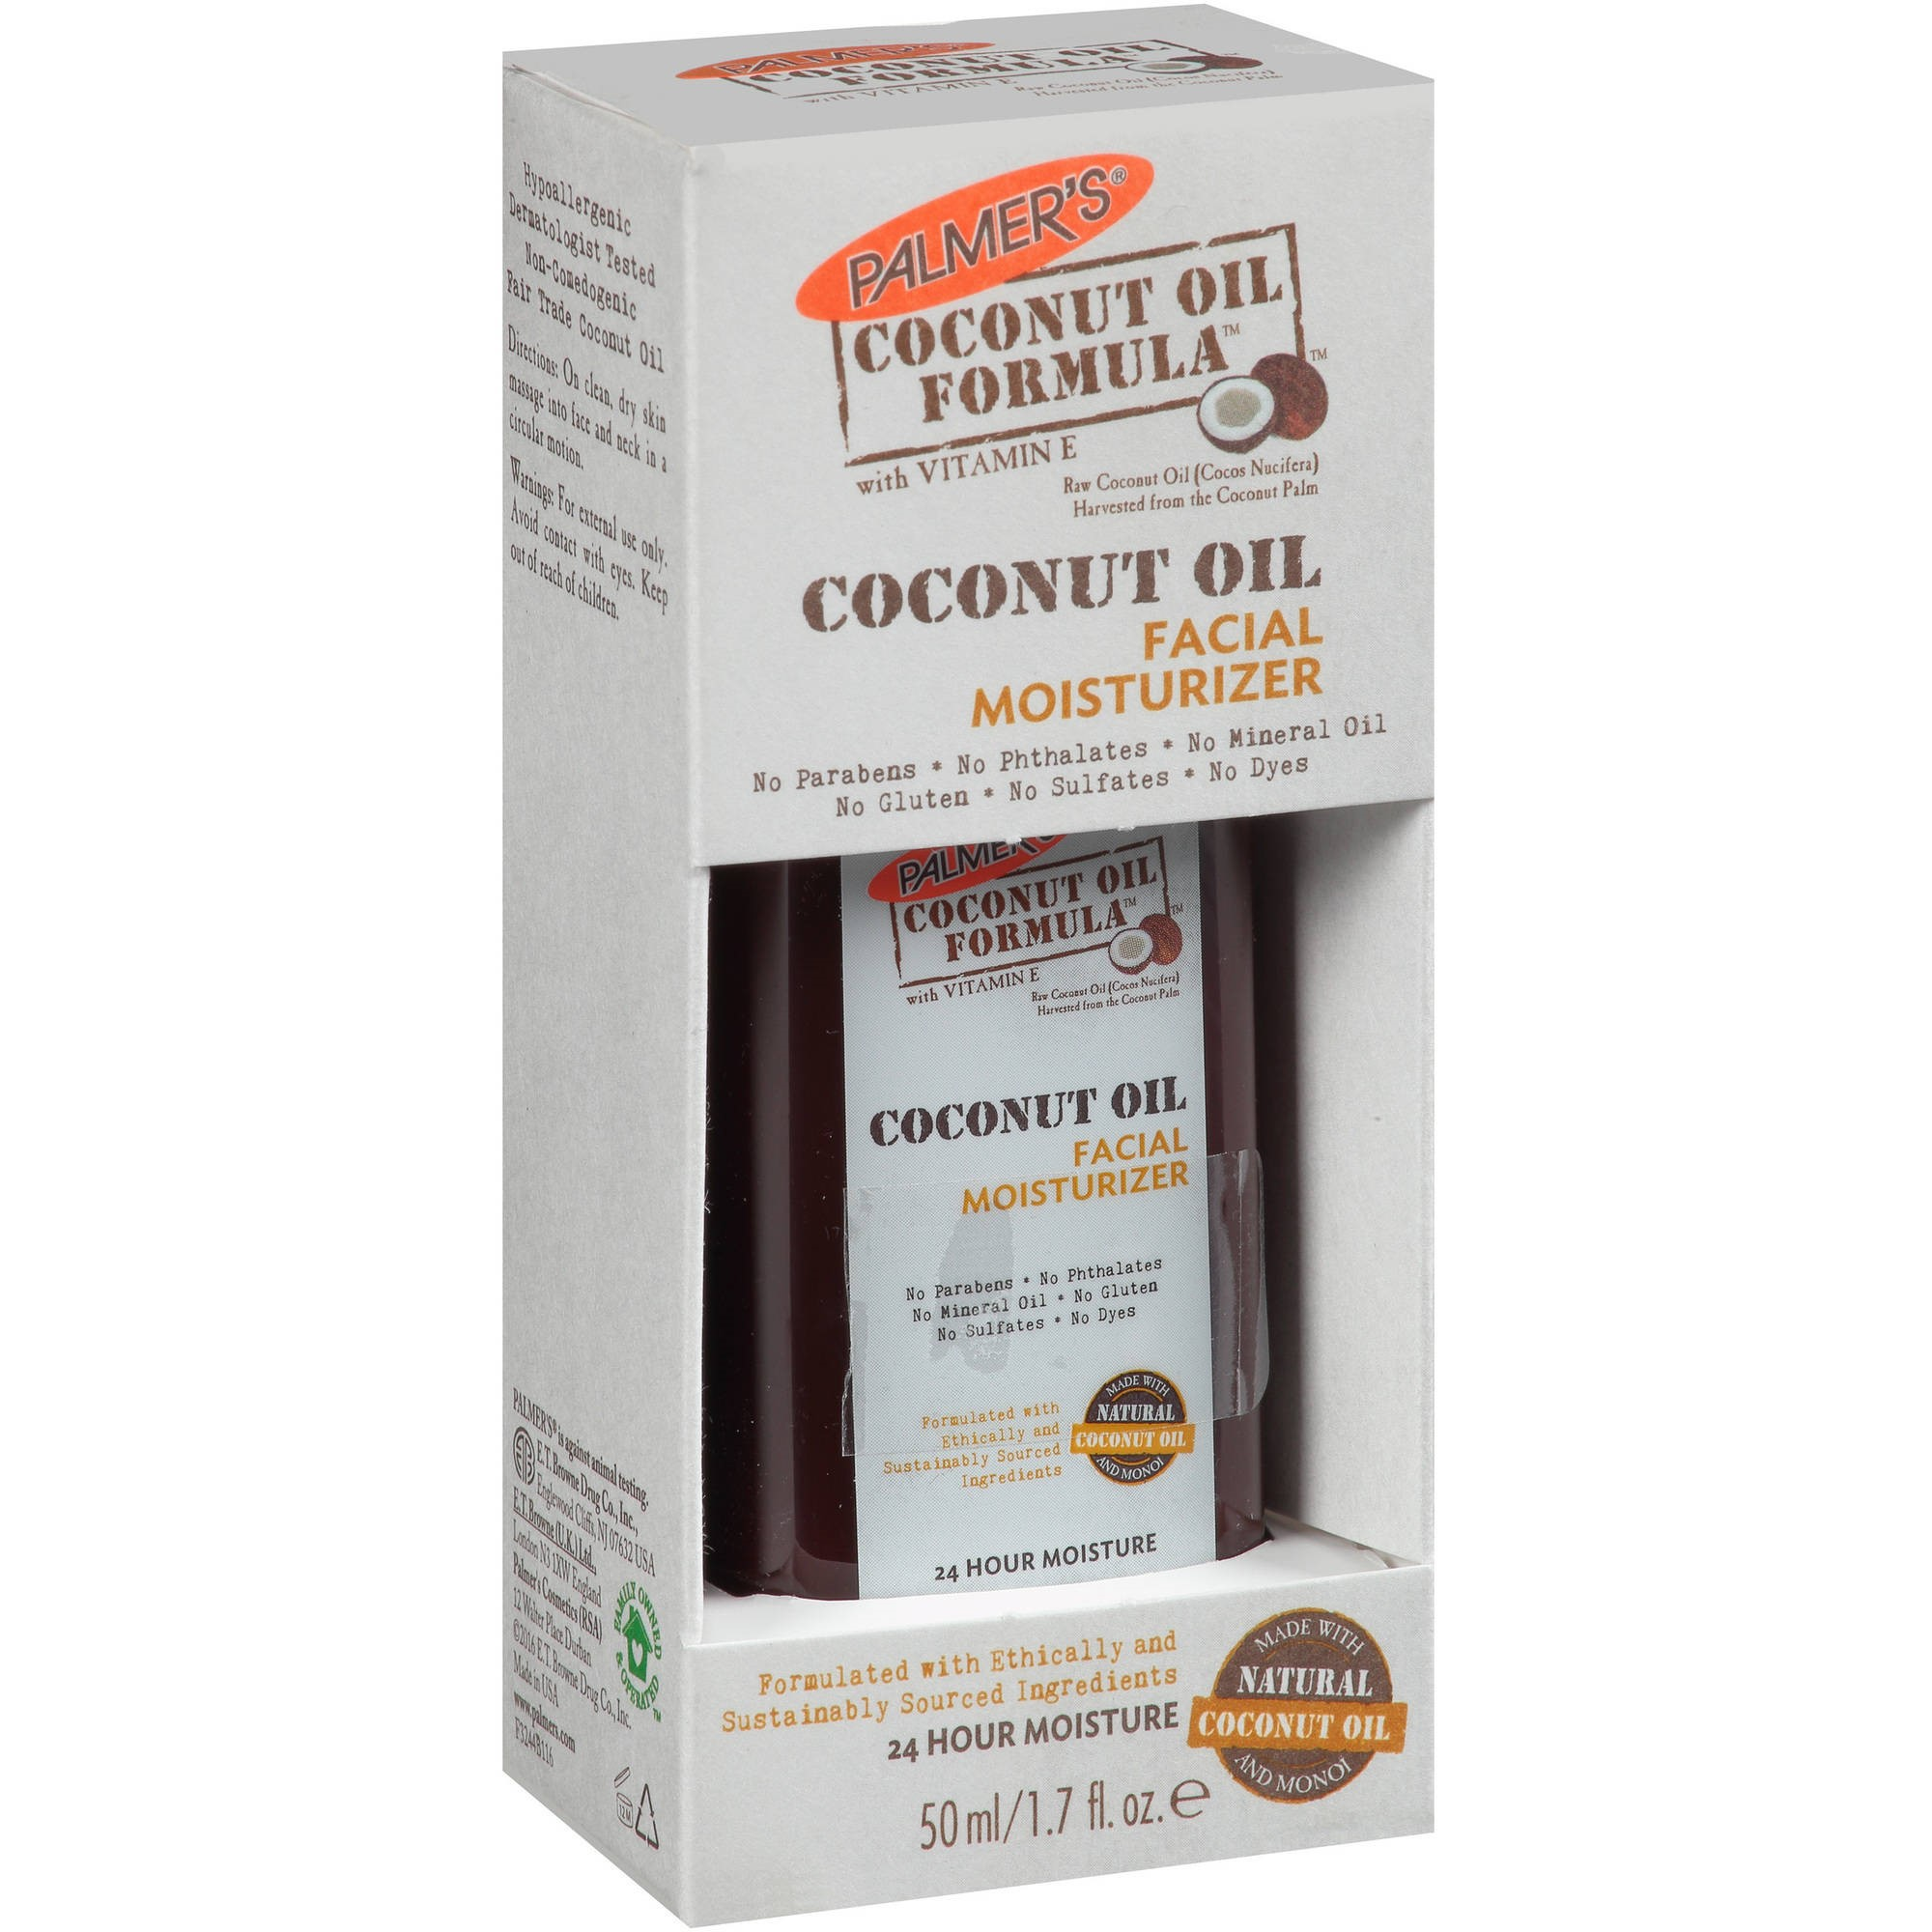 Palmer's Coconut Oil Facial Moisturizer, 1.7 oz